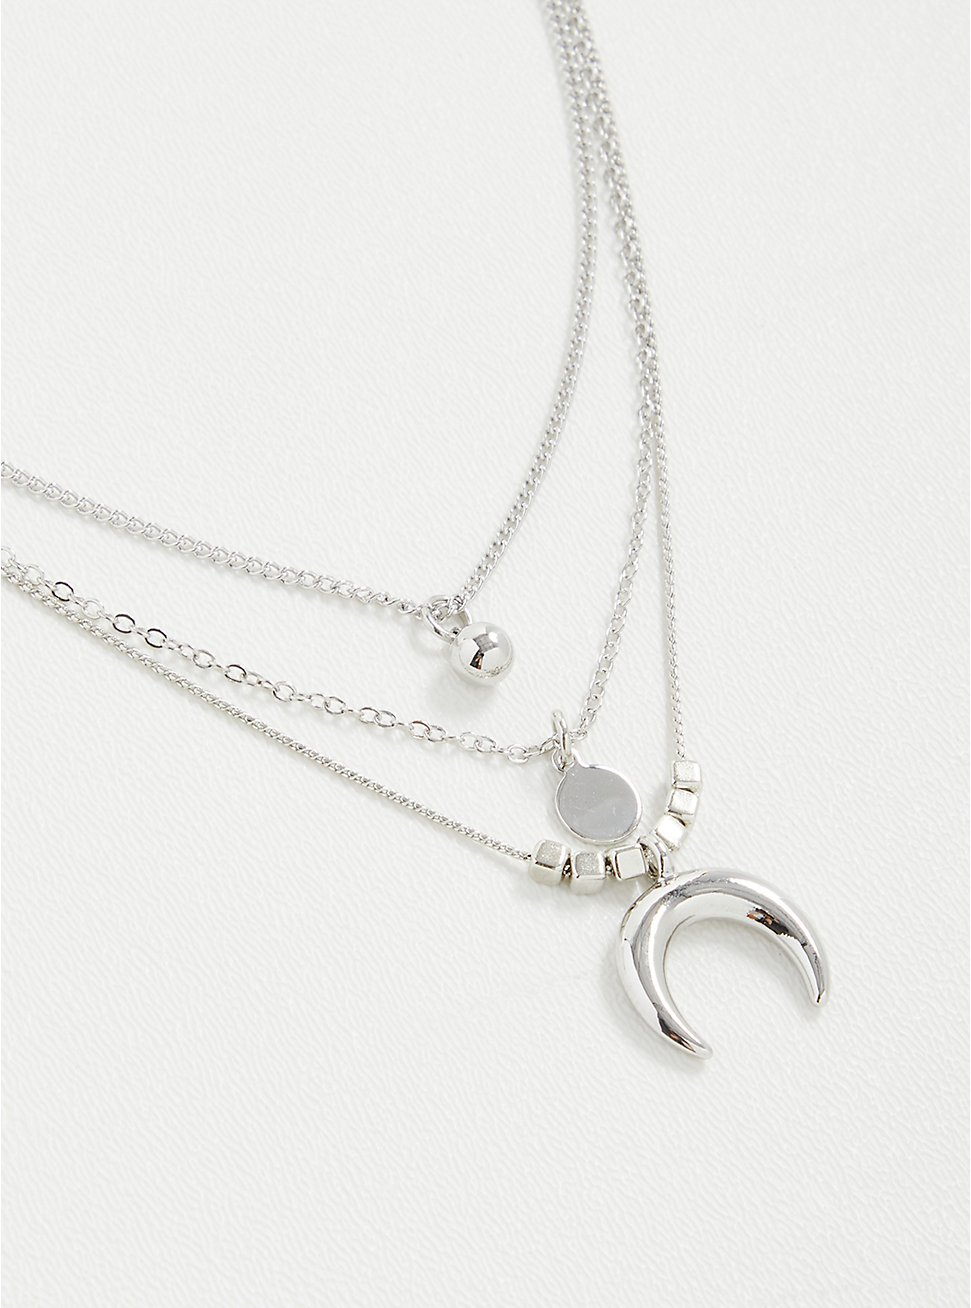 Horn Layered Necklace - Silver Tone, , hi-res